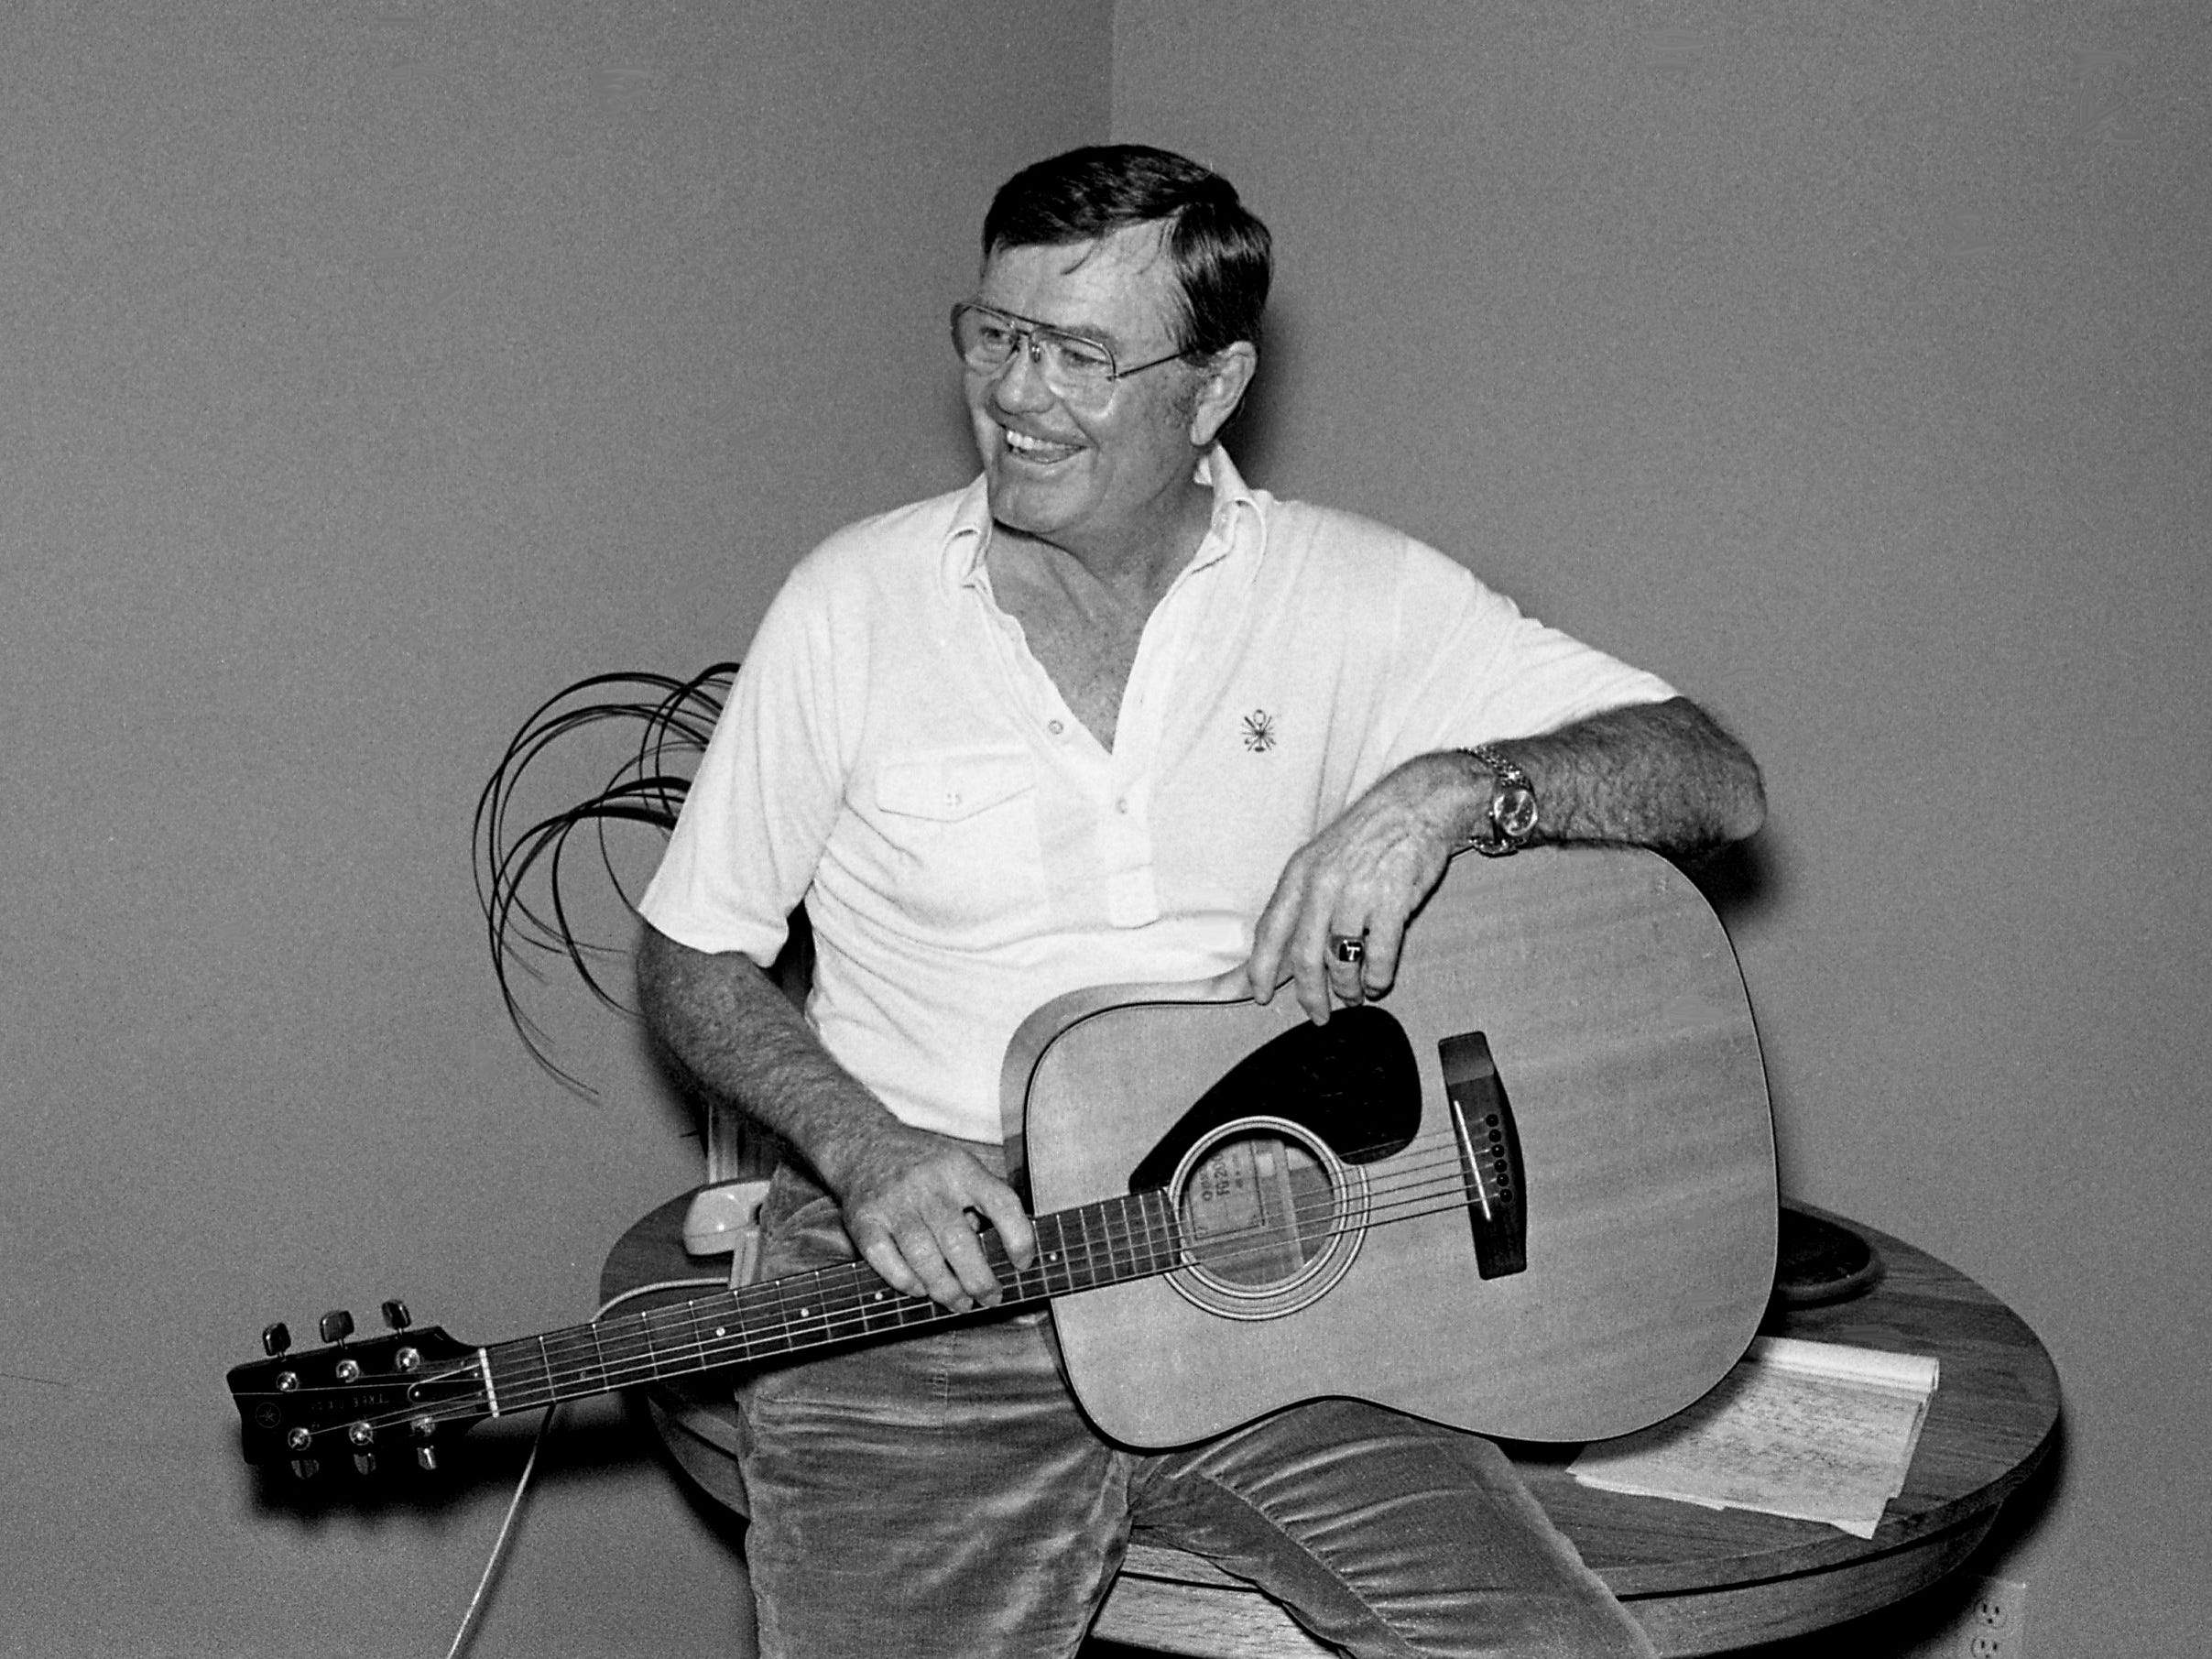 University of Texas athletic director and former head coach Darrell Royal relaxes with a guitar at the offices of Tree Publishing Co. on Feb. 23, 1979. Royal was in town for a visit to the Nashville Songwriters Awards banquet.